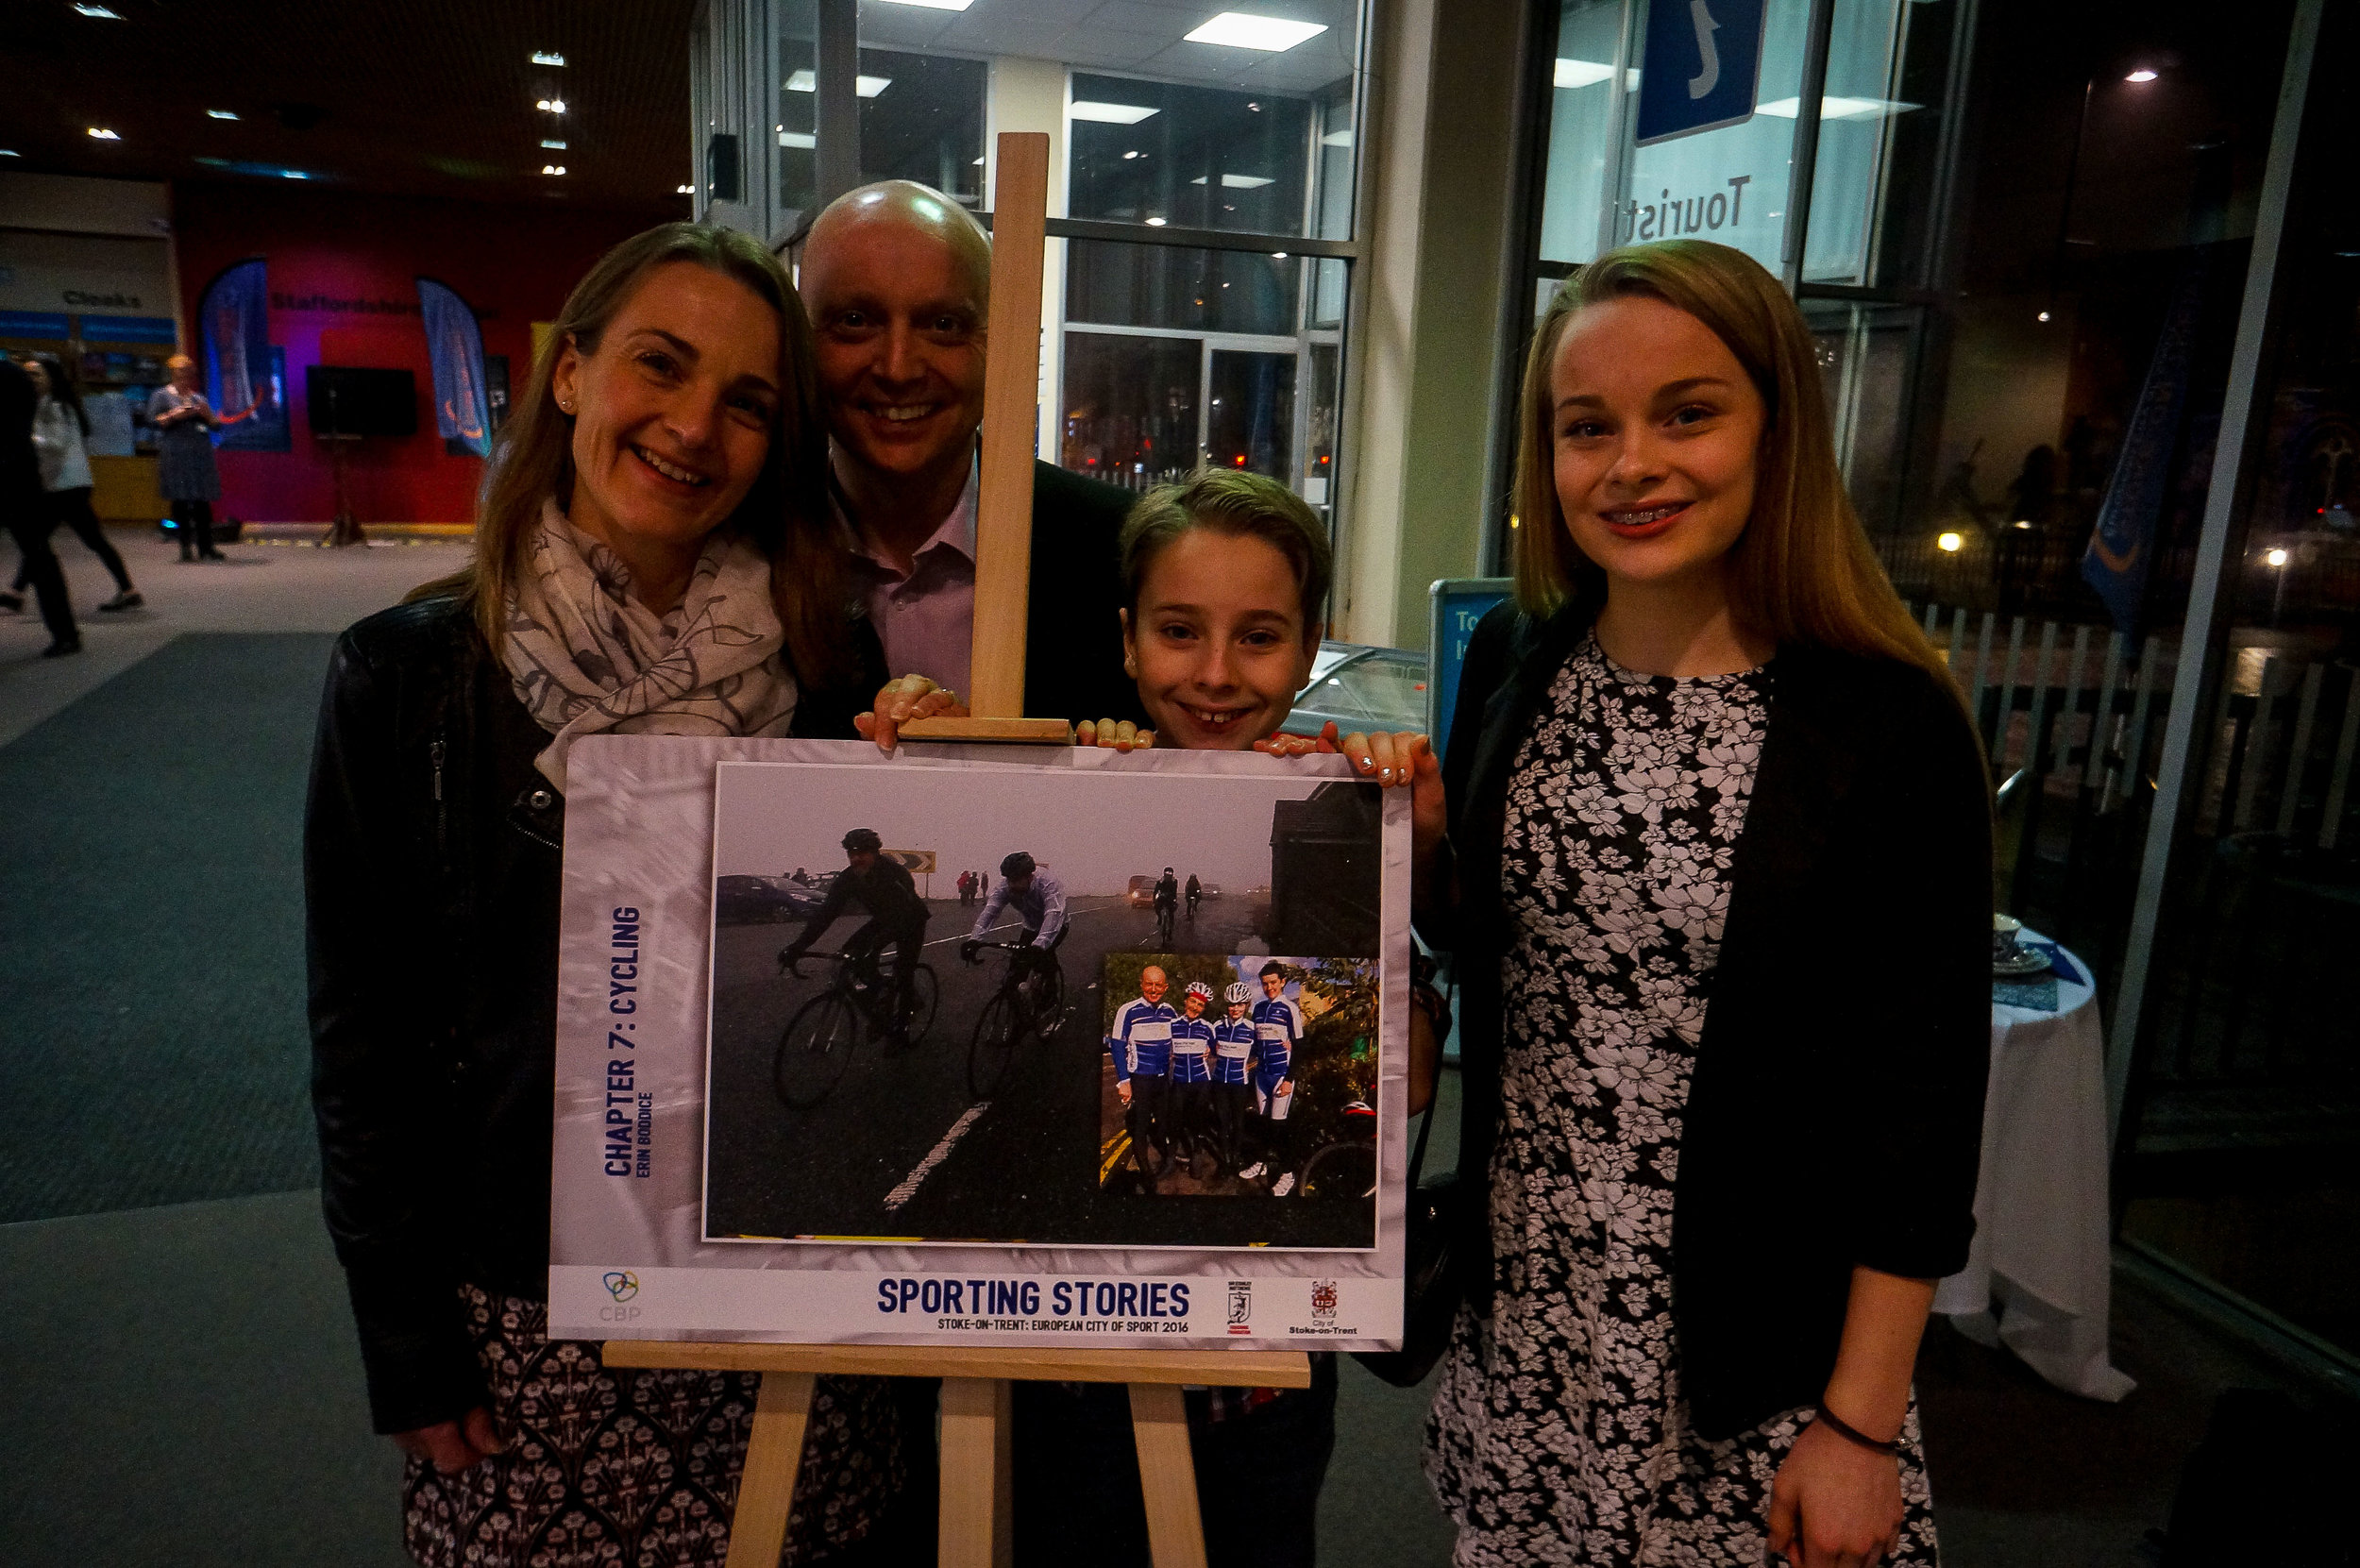 Erin (on right) - rising cycling star, Cat & Fiddle Challenge completer and author - with her family (cyclists all!)